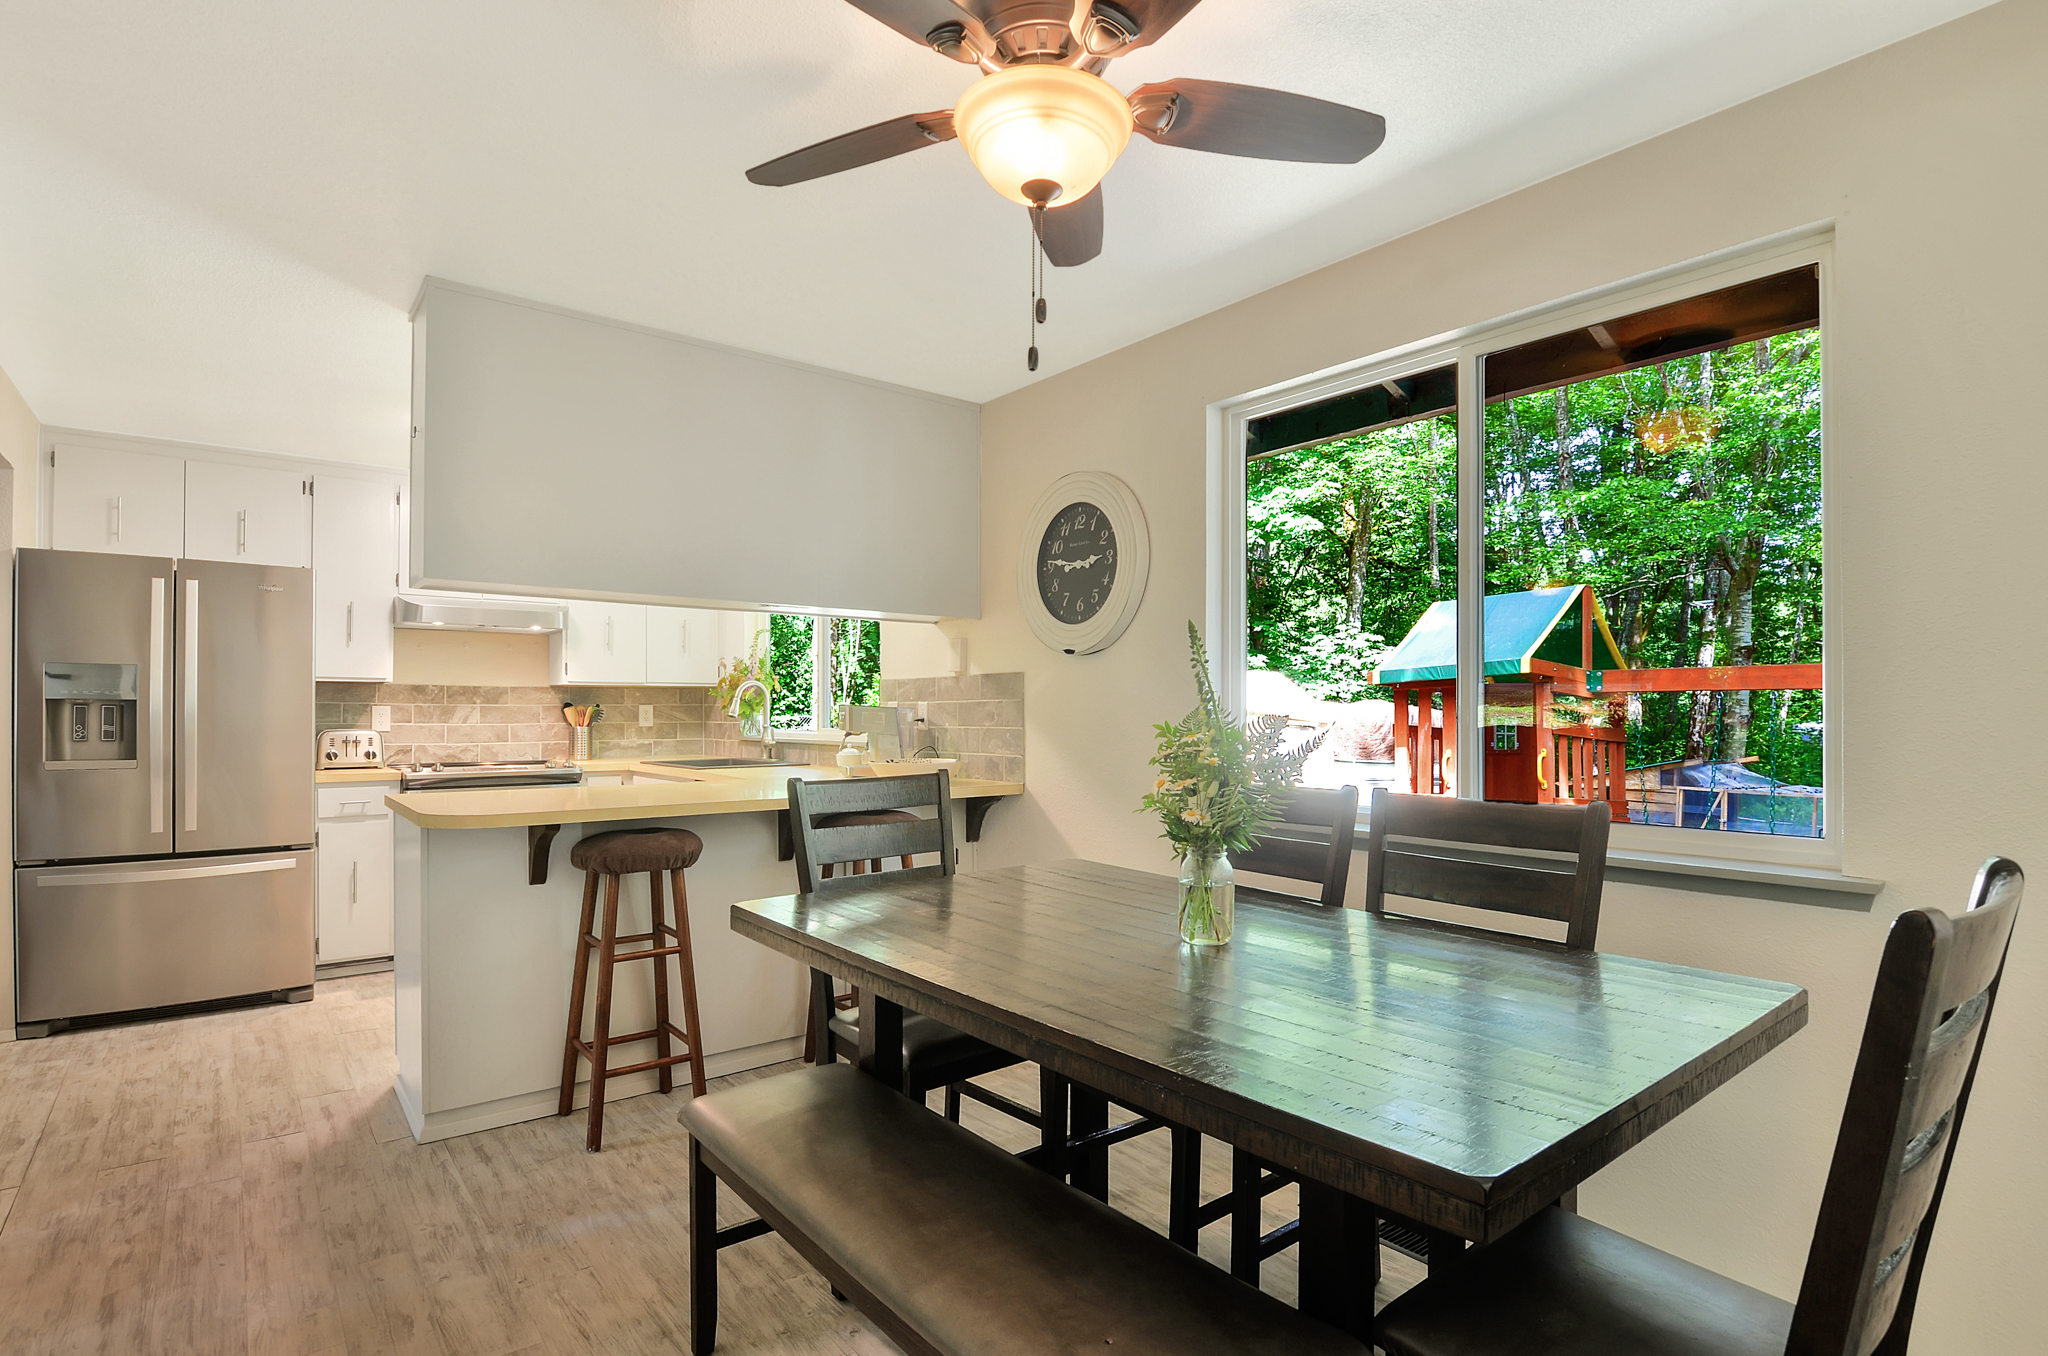 One of our favorite parts of the house is this updated kitchen with the dining room overlooking the back yard.